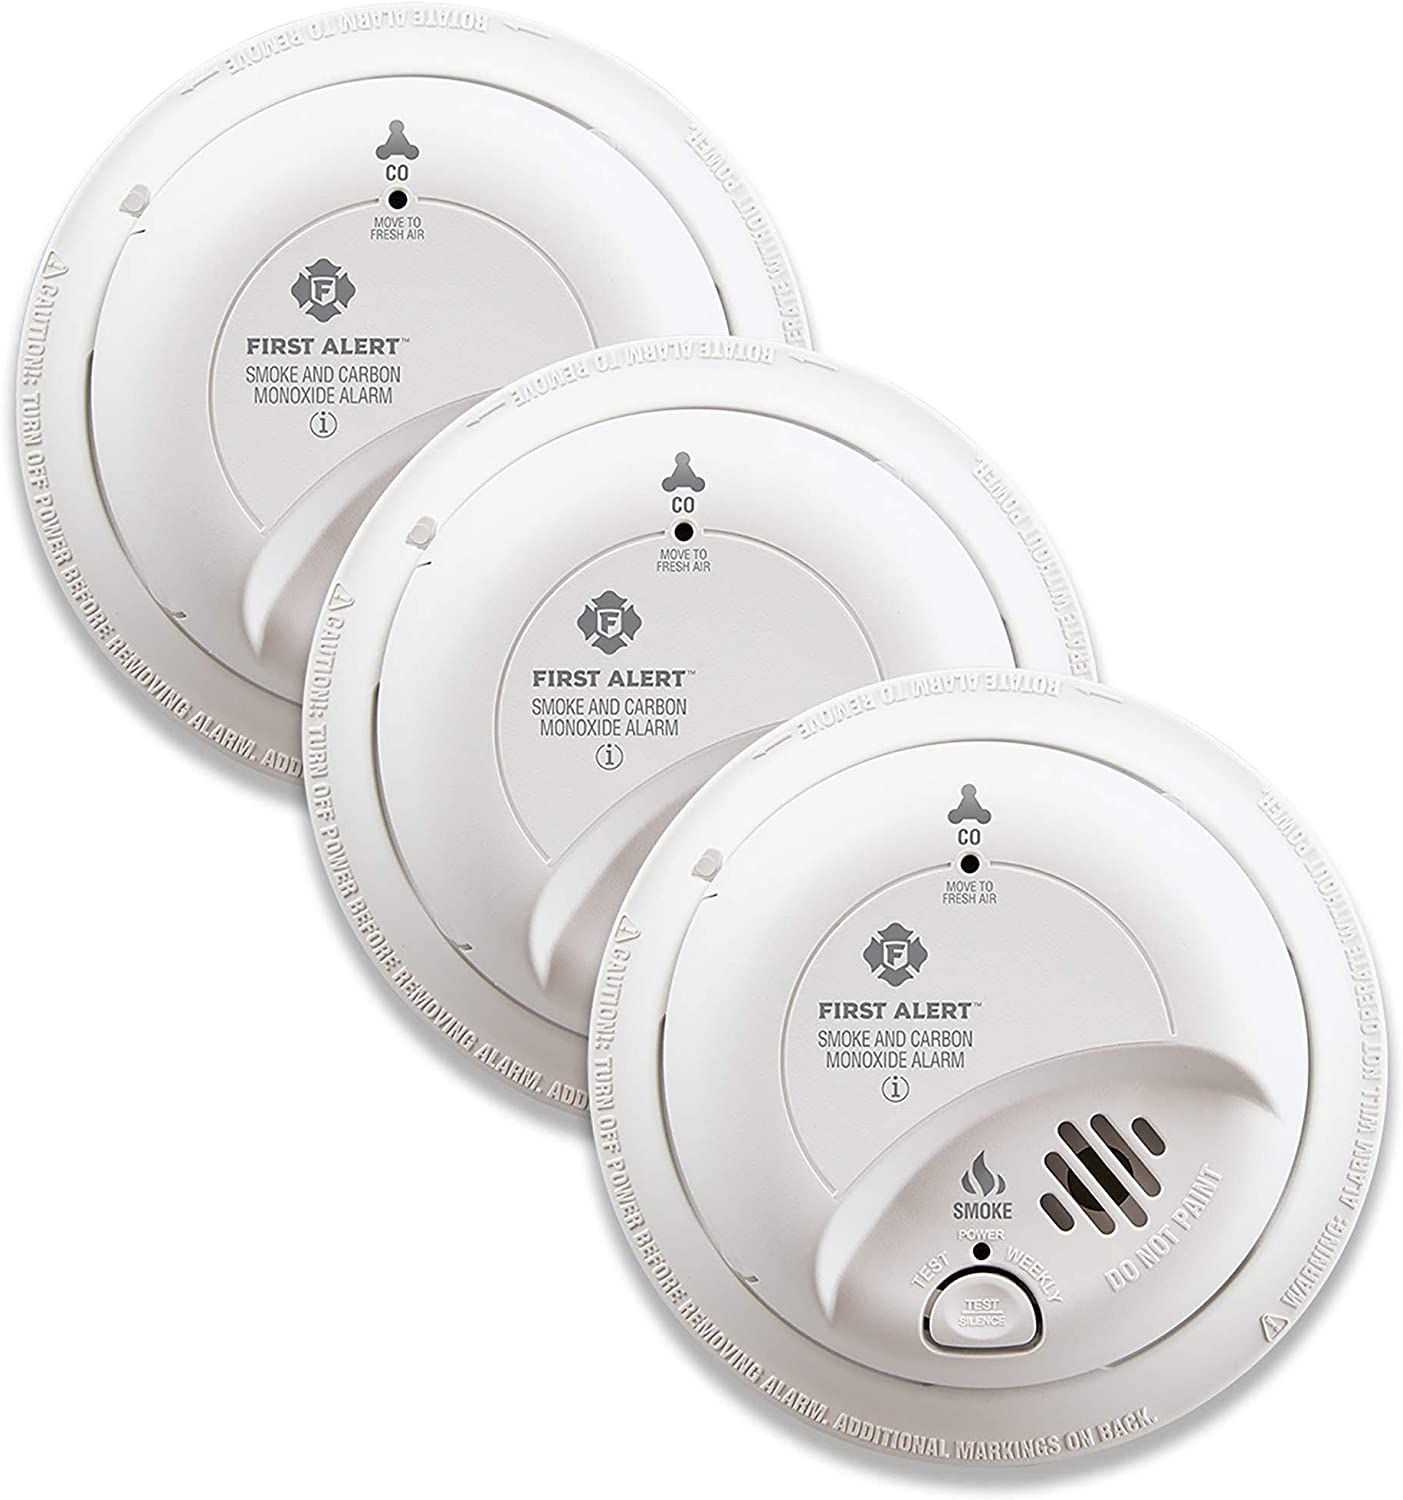 FIRST ALERT BRK SC9120B-3 Hardwired Smoke and Carbon Monoxide (CO) Detector